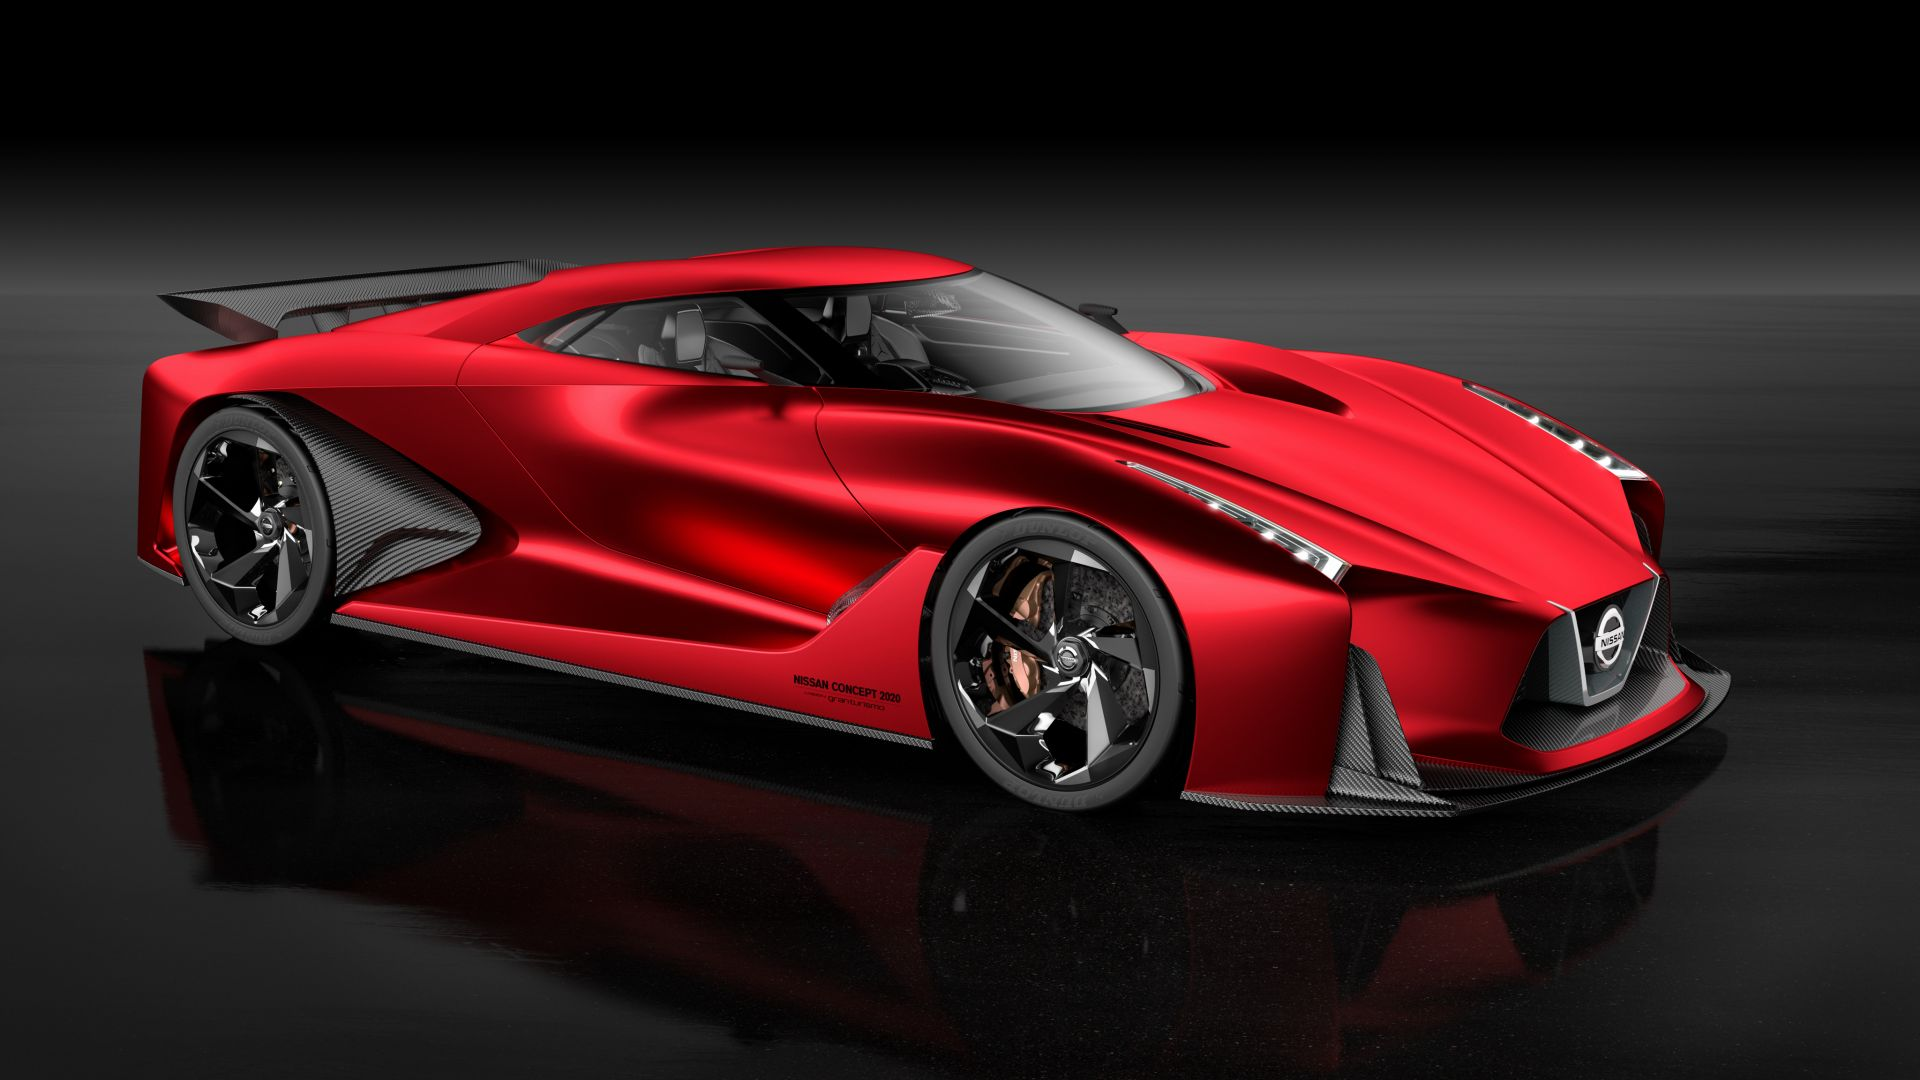 wallpaper nissan 2020 vision gran turismo red concept nissan supercar luxury cars sports. Black Bedroom Furniture Sets. Home Design Ideas